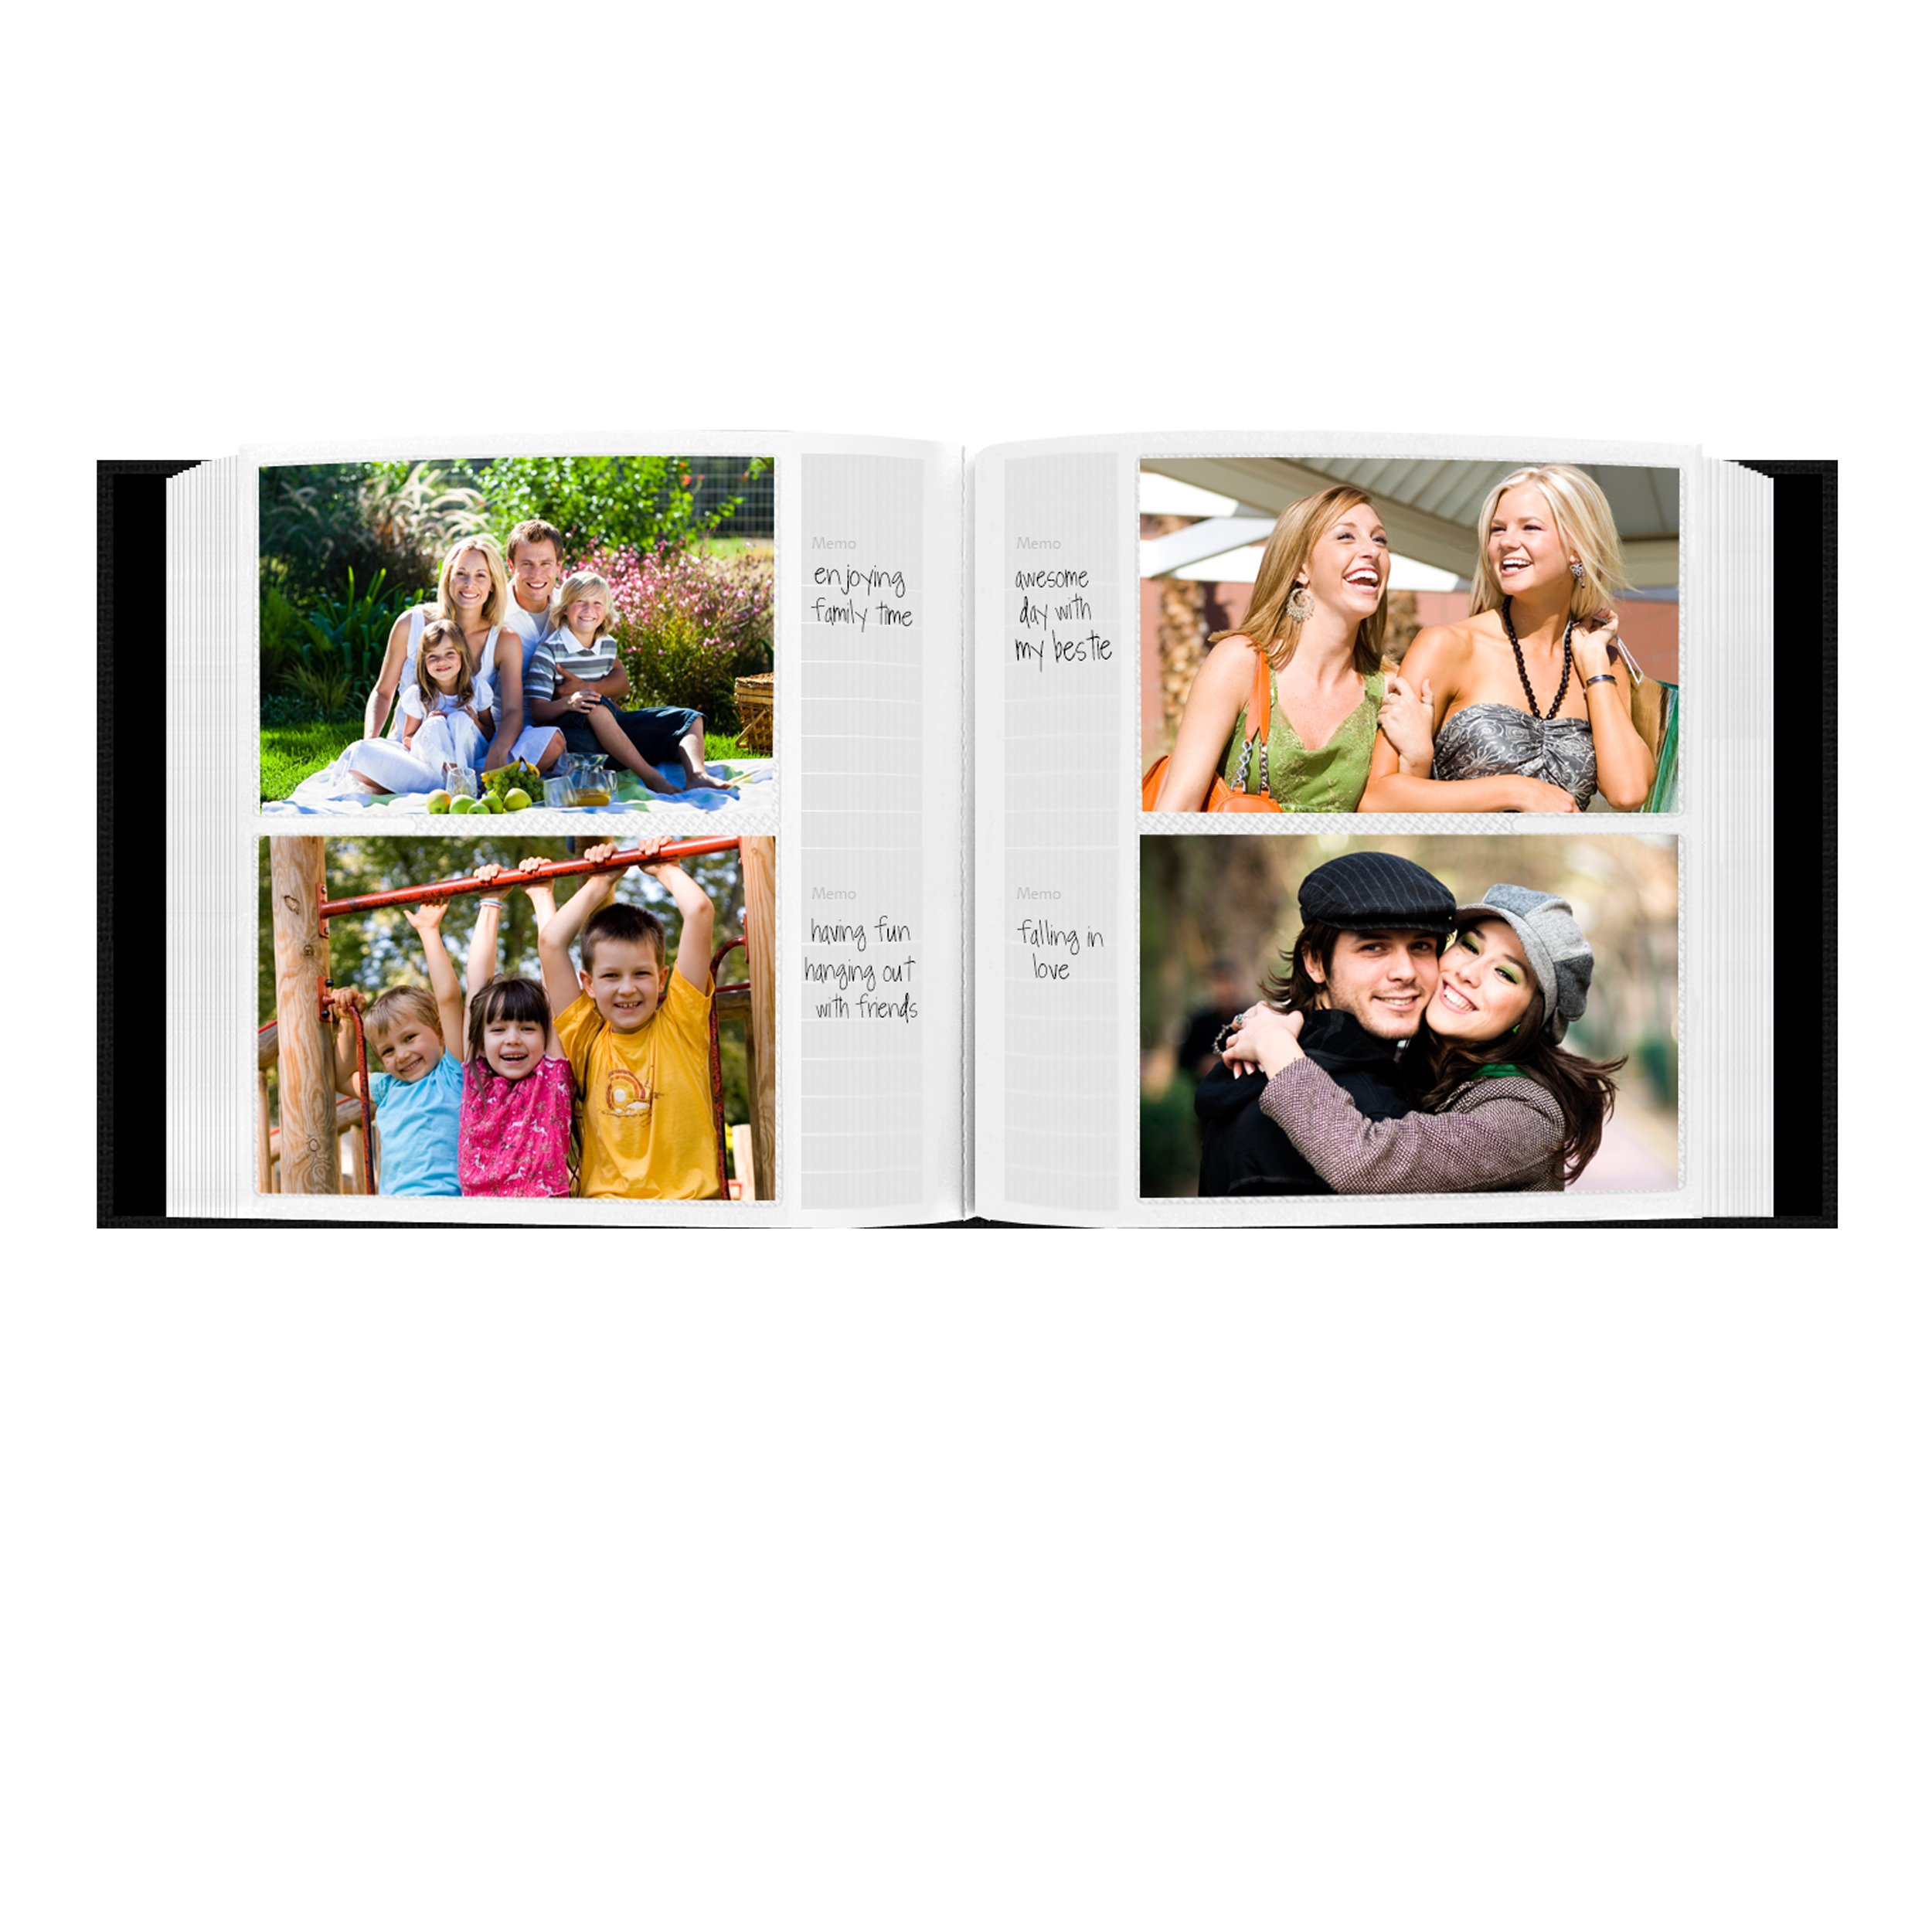 Fabric Frame Cover Photo Album 200 Pockets Hold 4x6 Photos, Deep Black by Pioneer Photo Albums (Image #4)